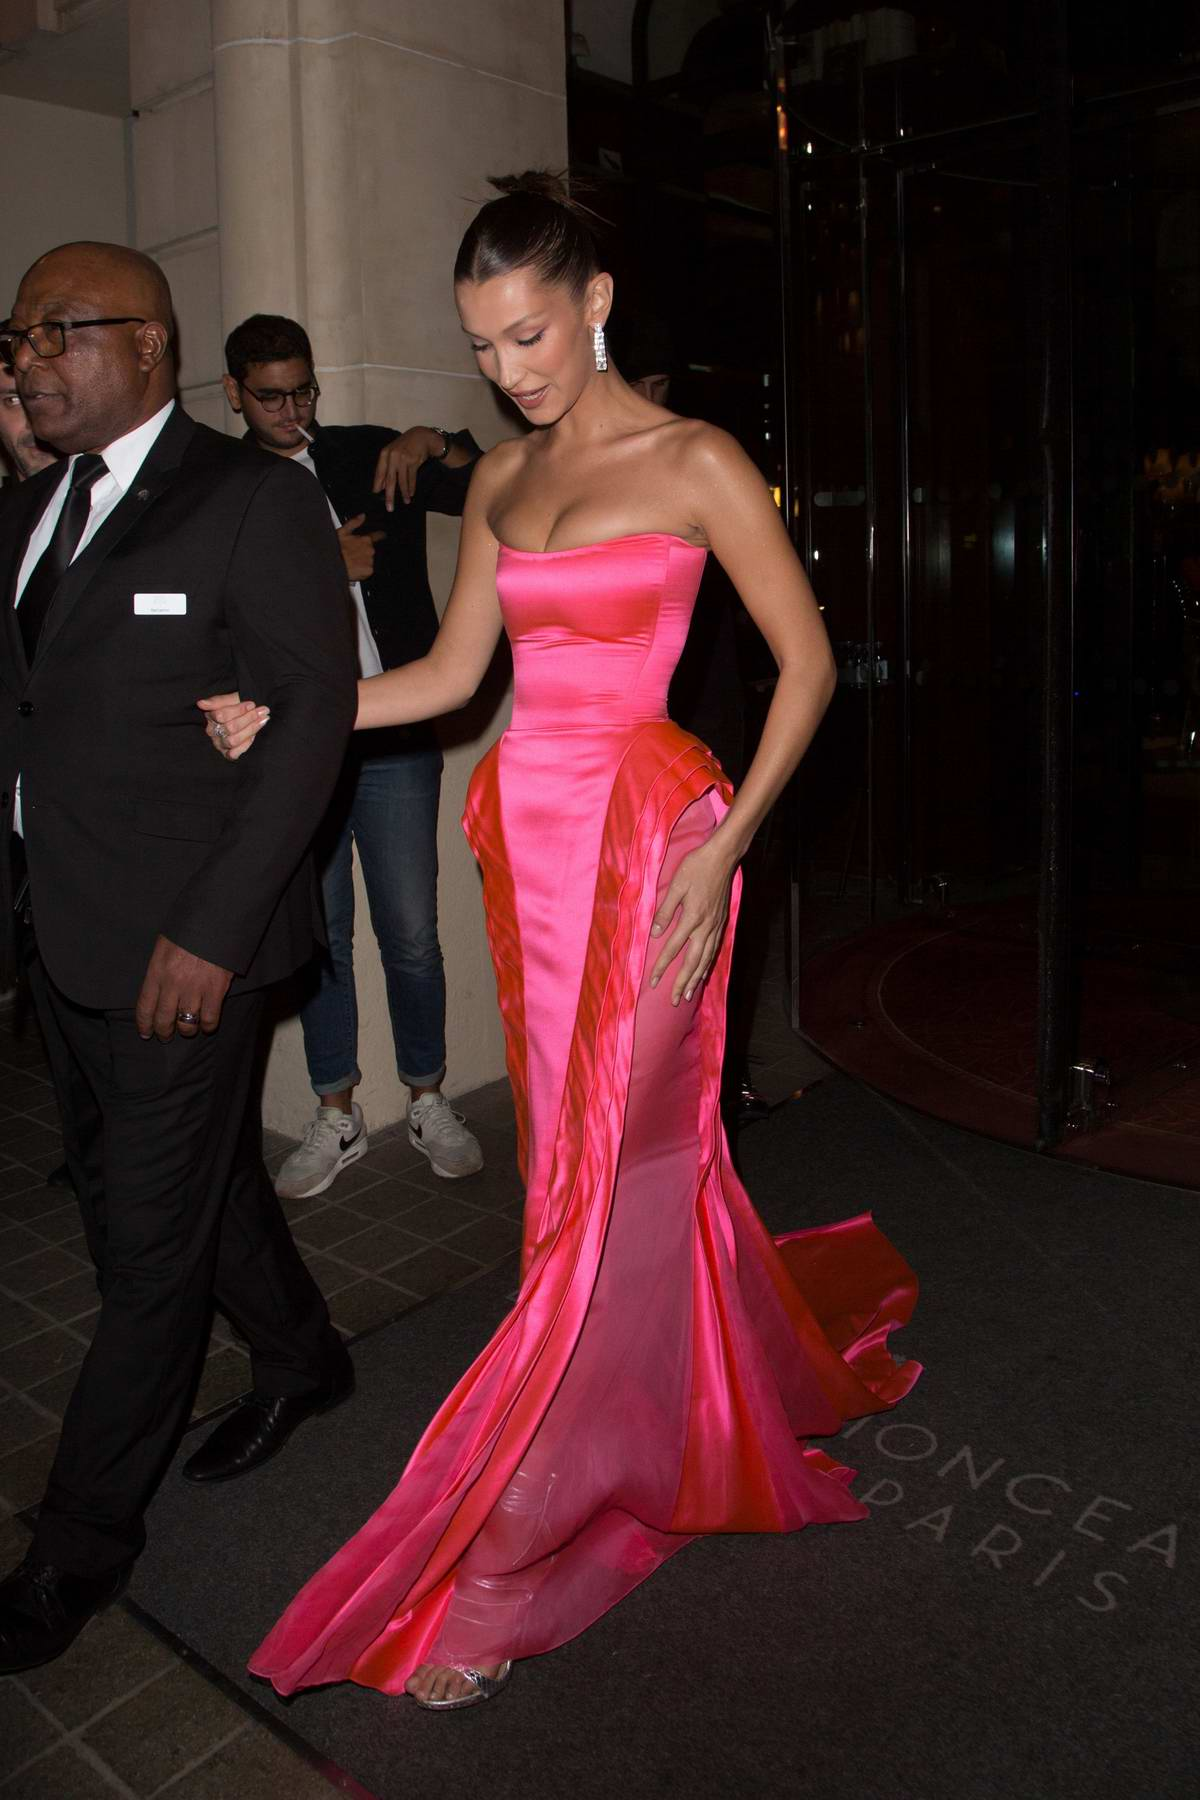 Bella Hadid wore a strapless pink gown while heading to